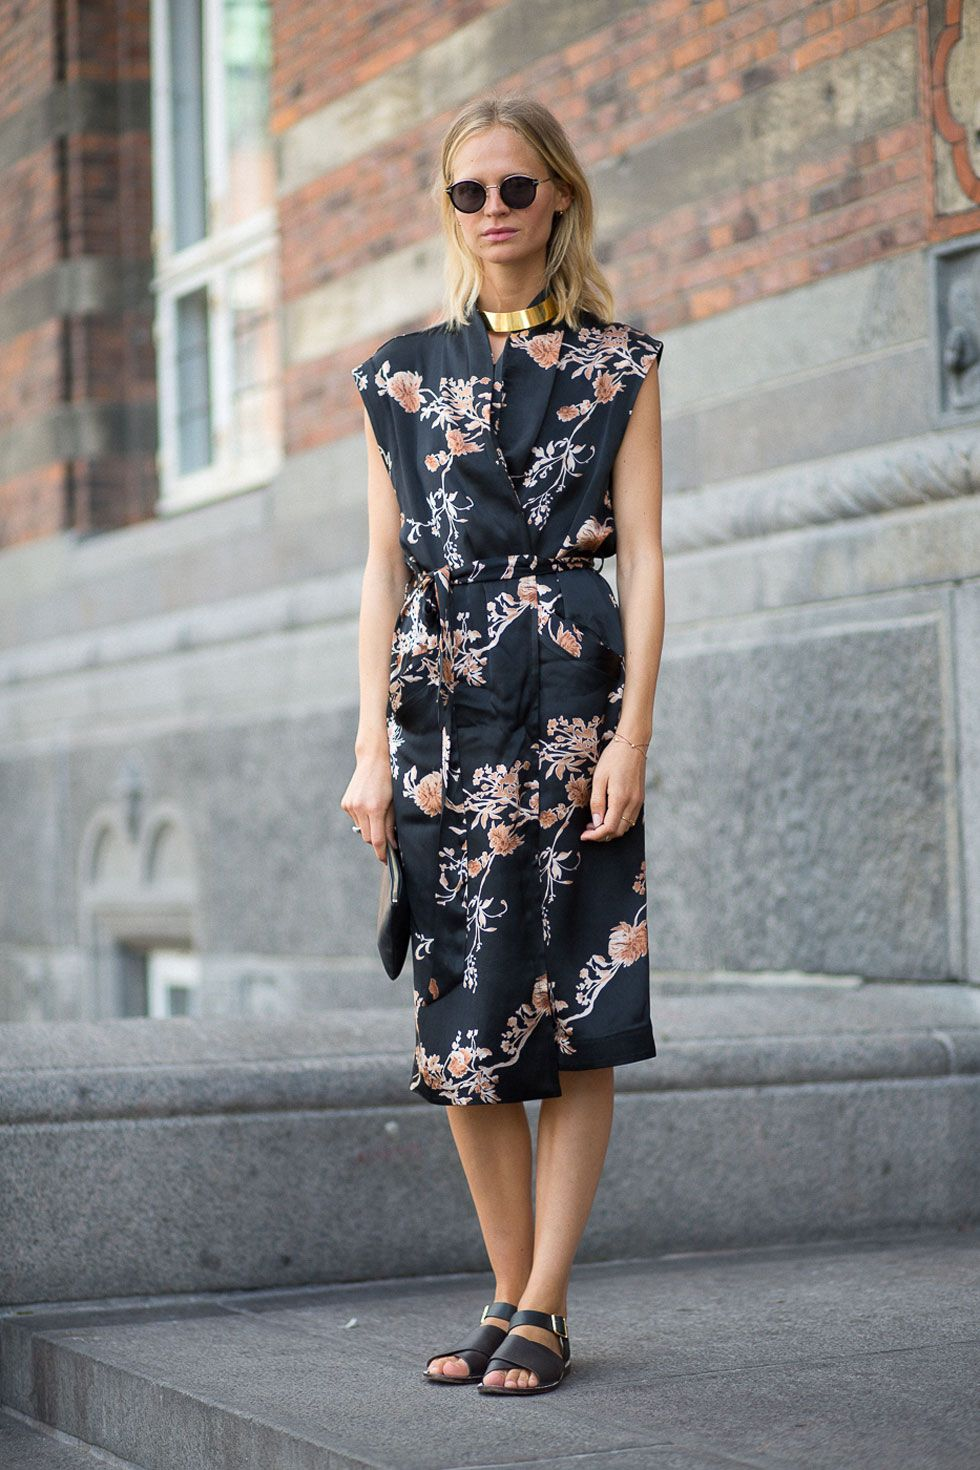 <p>Beat the heat in an easy, floral dress and luxe, flat sandals. From the office to a casual night out, there's no going wrong with this look. </p>